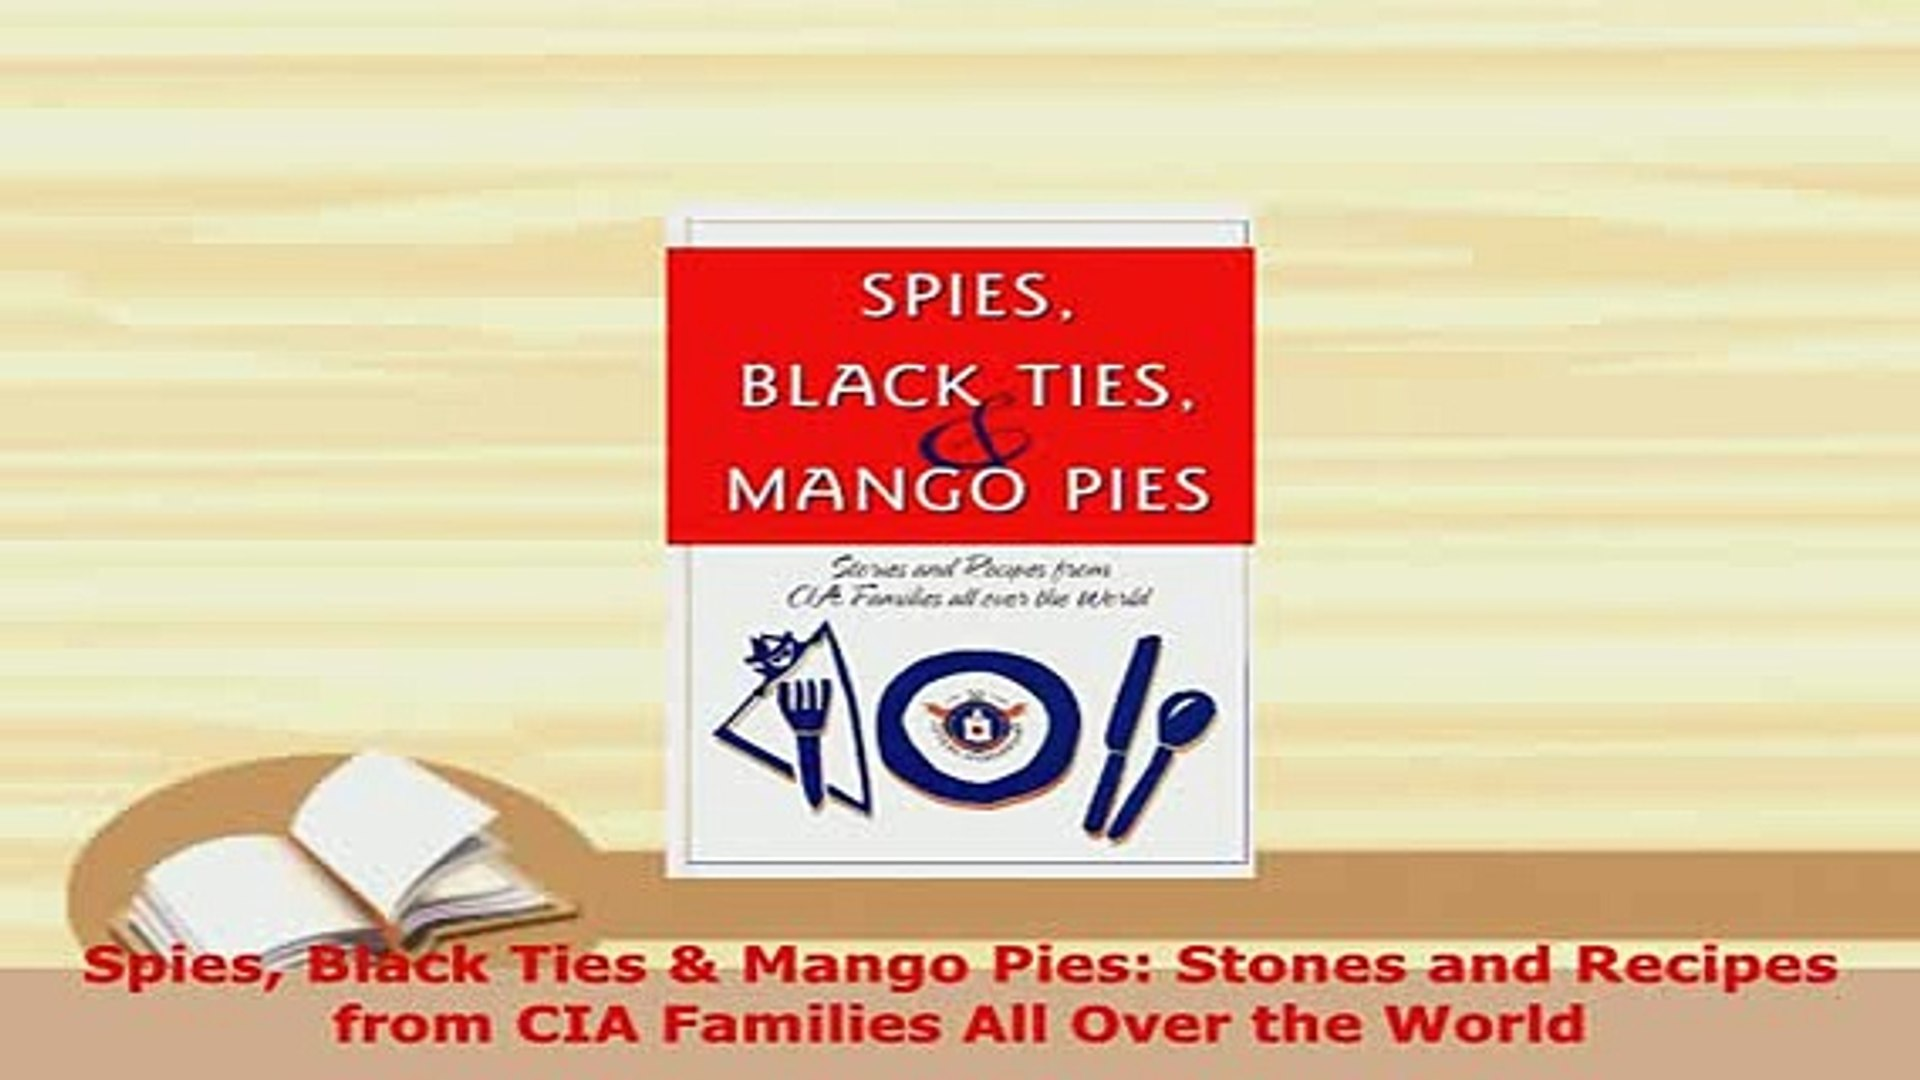 Download  Spies Black Ties  Mango Pies Stones and Recipes from CIA Families All Over the World Read